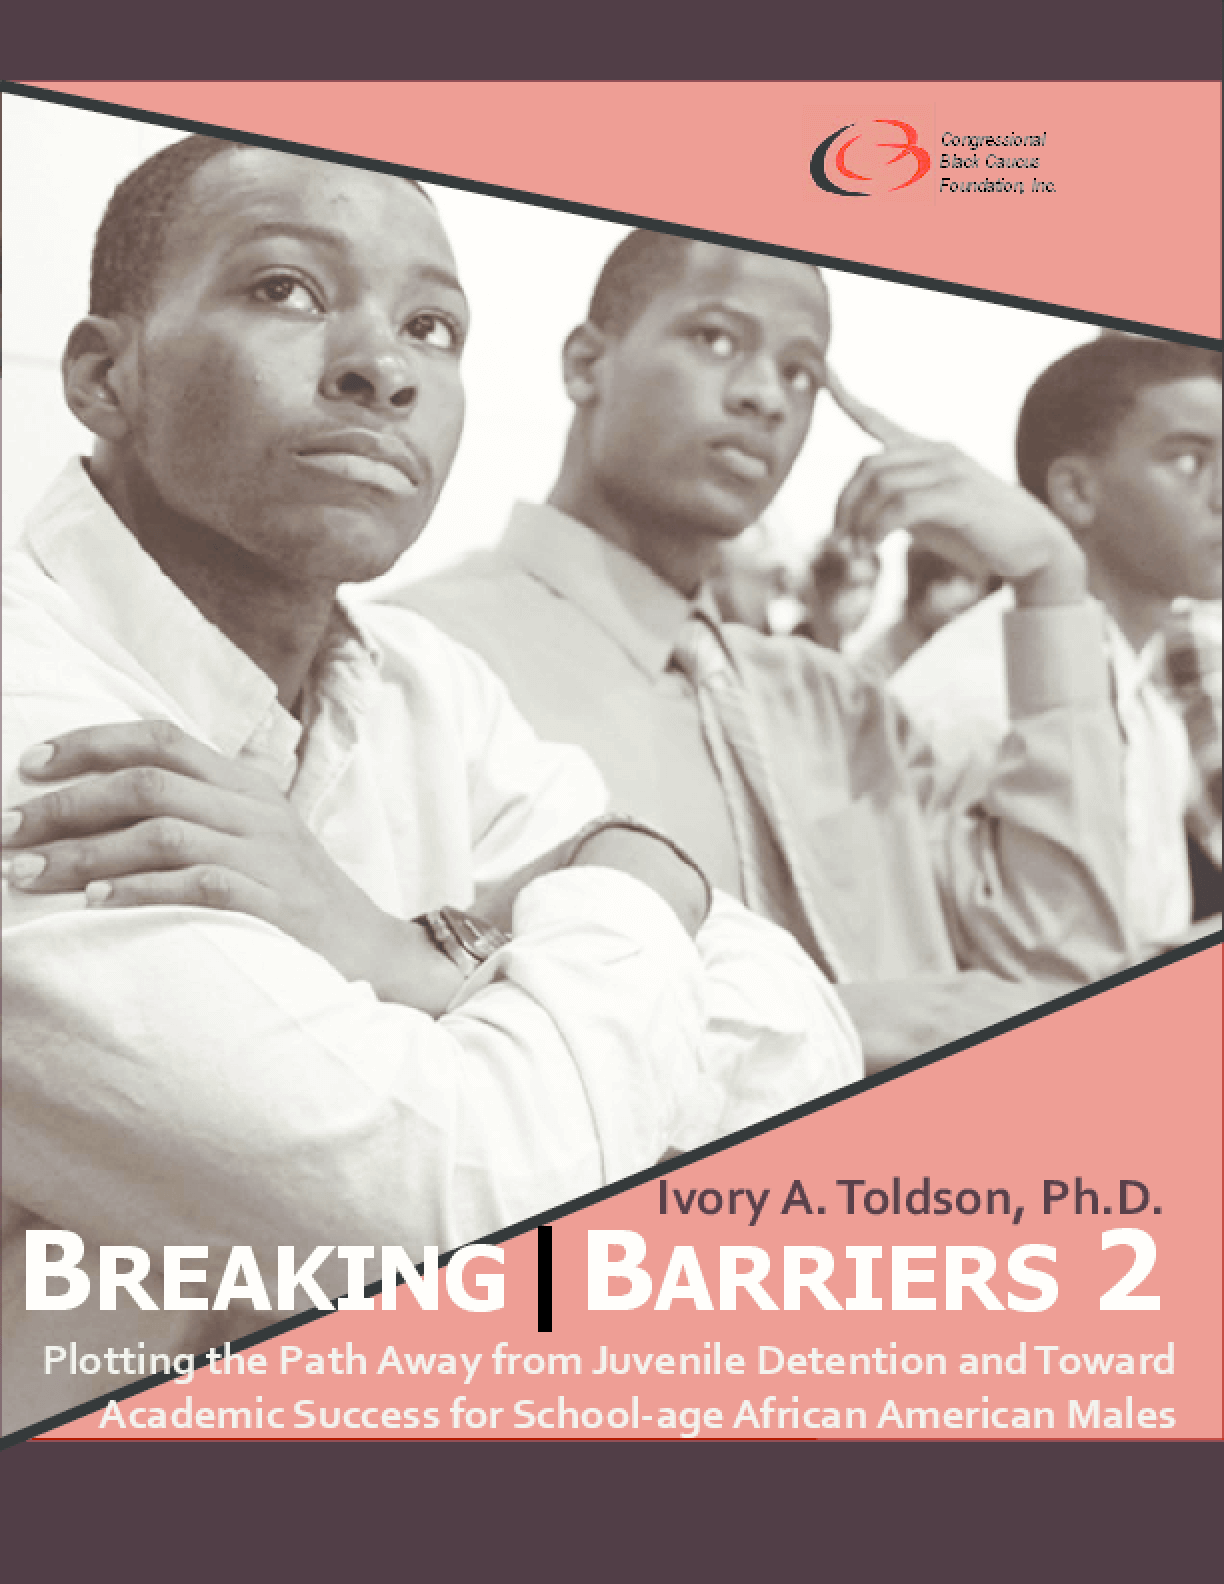 Breaking Barriers 2: Plotting the Path Away From Juvenile Detention and Toward Academic Success for School-Age African American Males